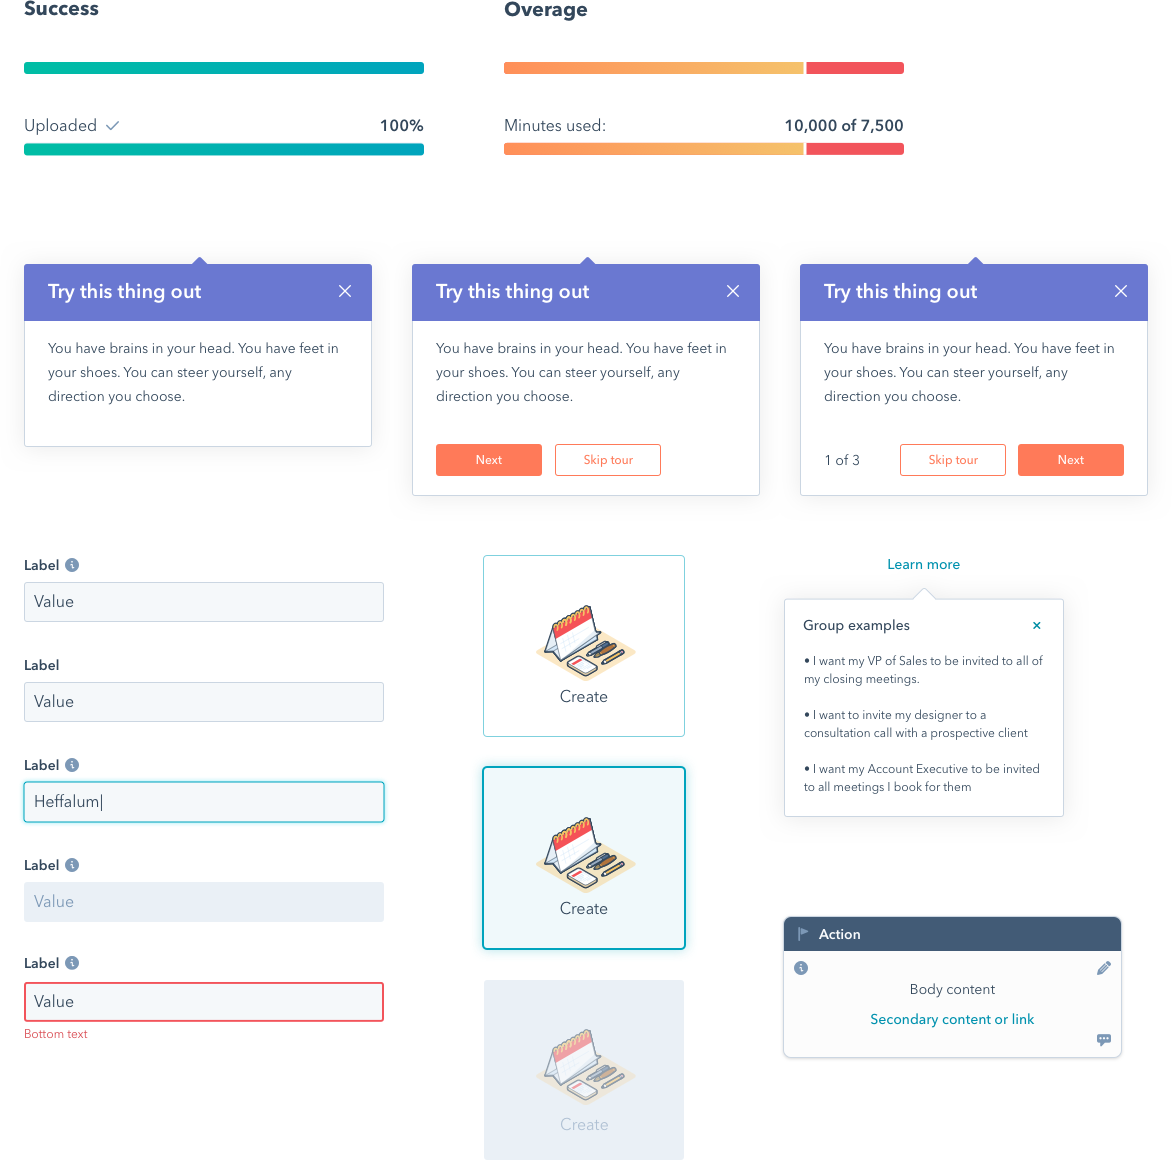 An assortment of UI components that I had a hand in updating or refactoring. These include progress bars, text inputs, buttons, popovers, and cards.